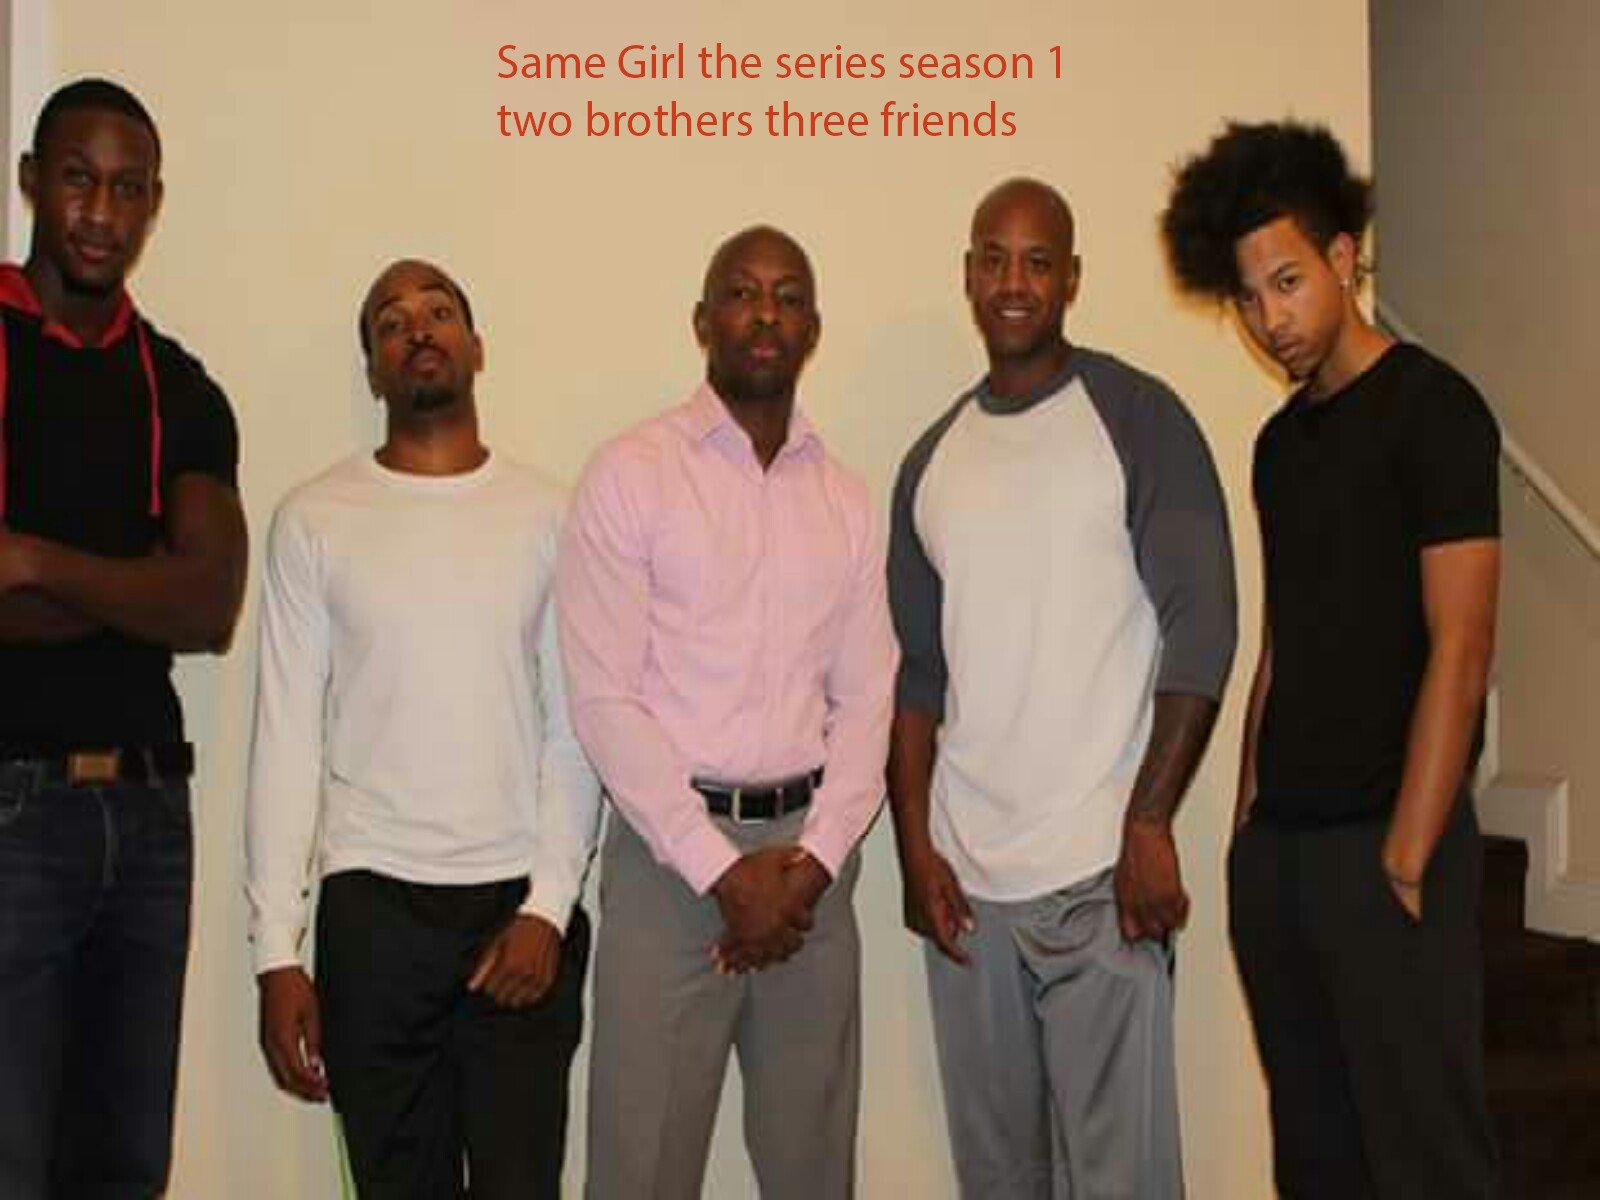 same Girl the series - Season 1